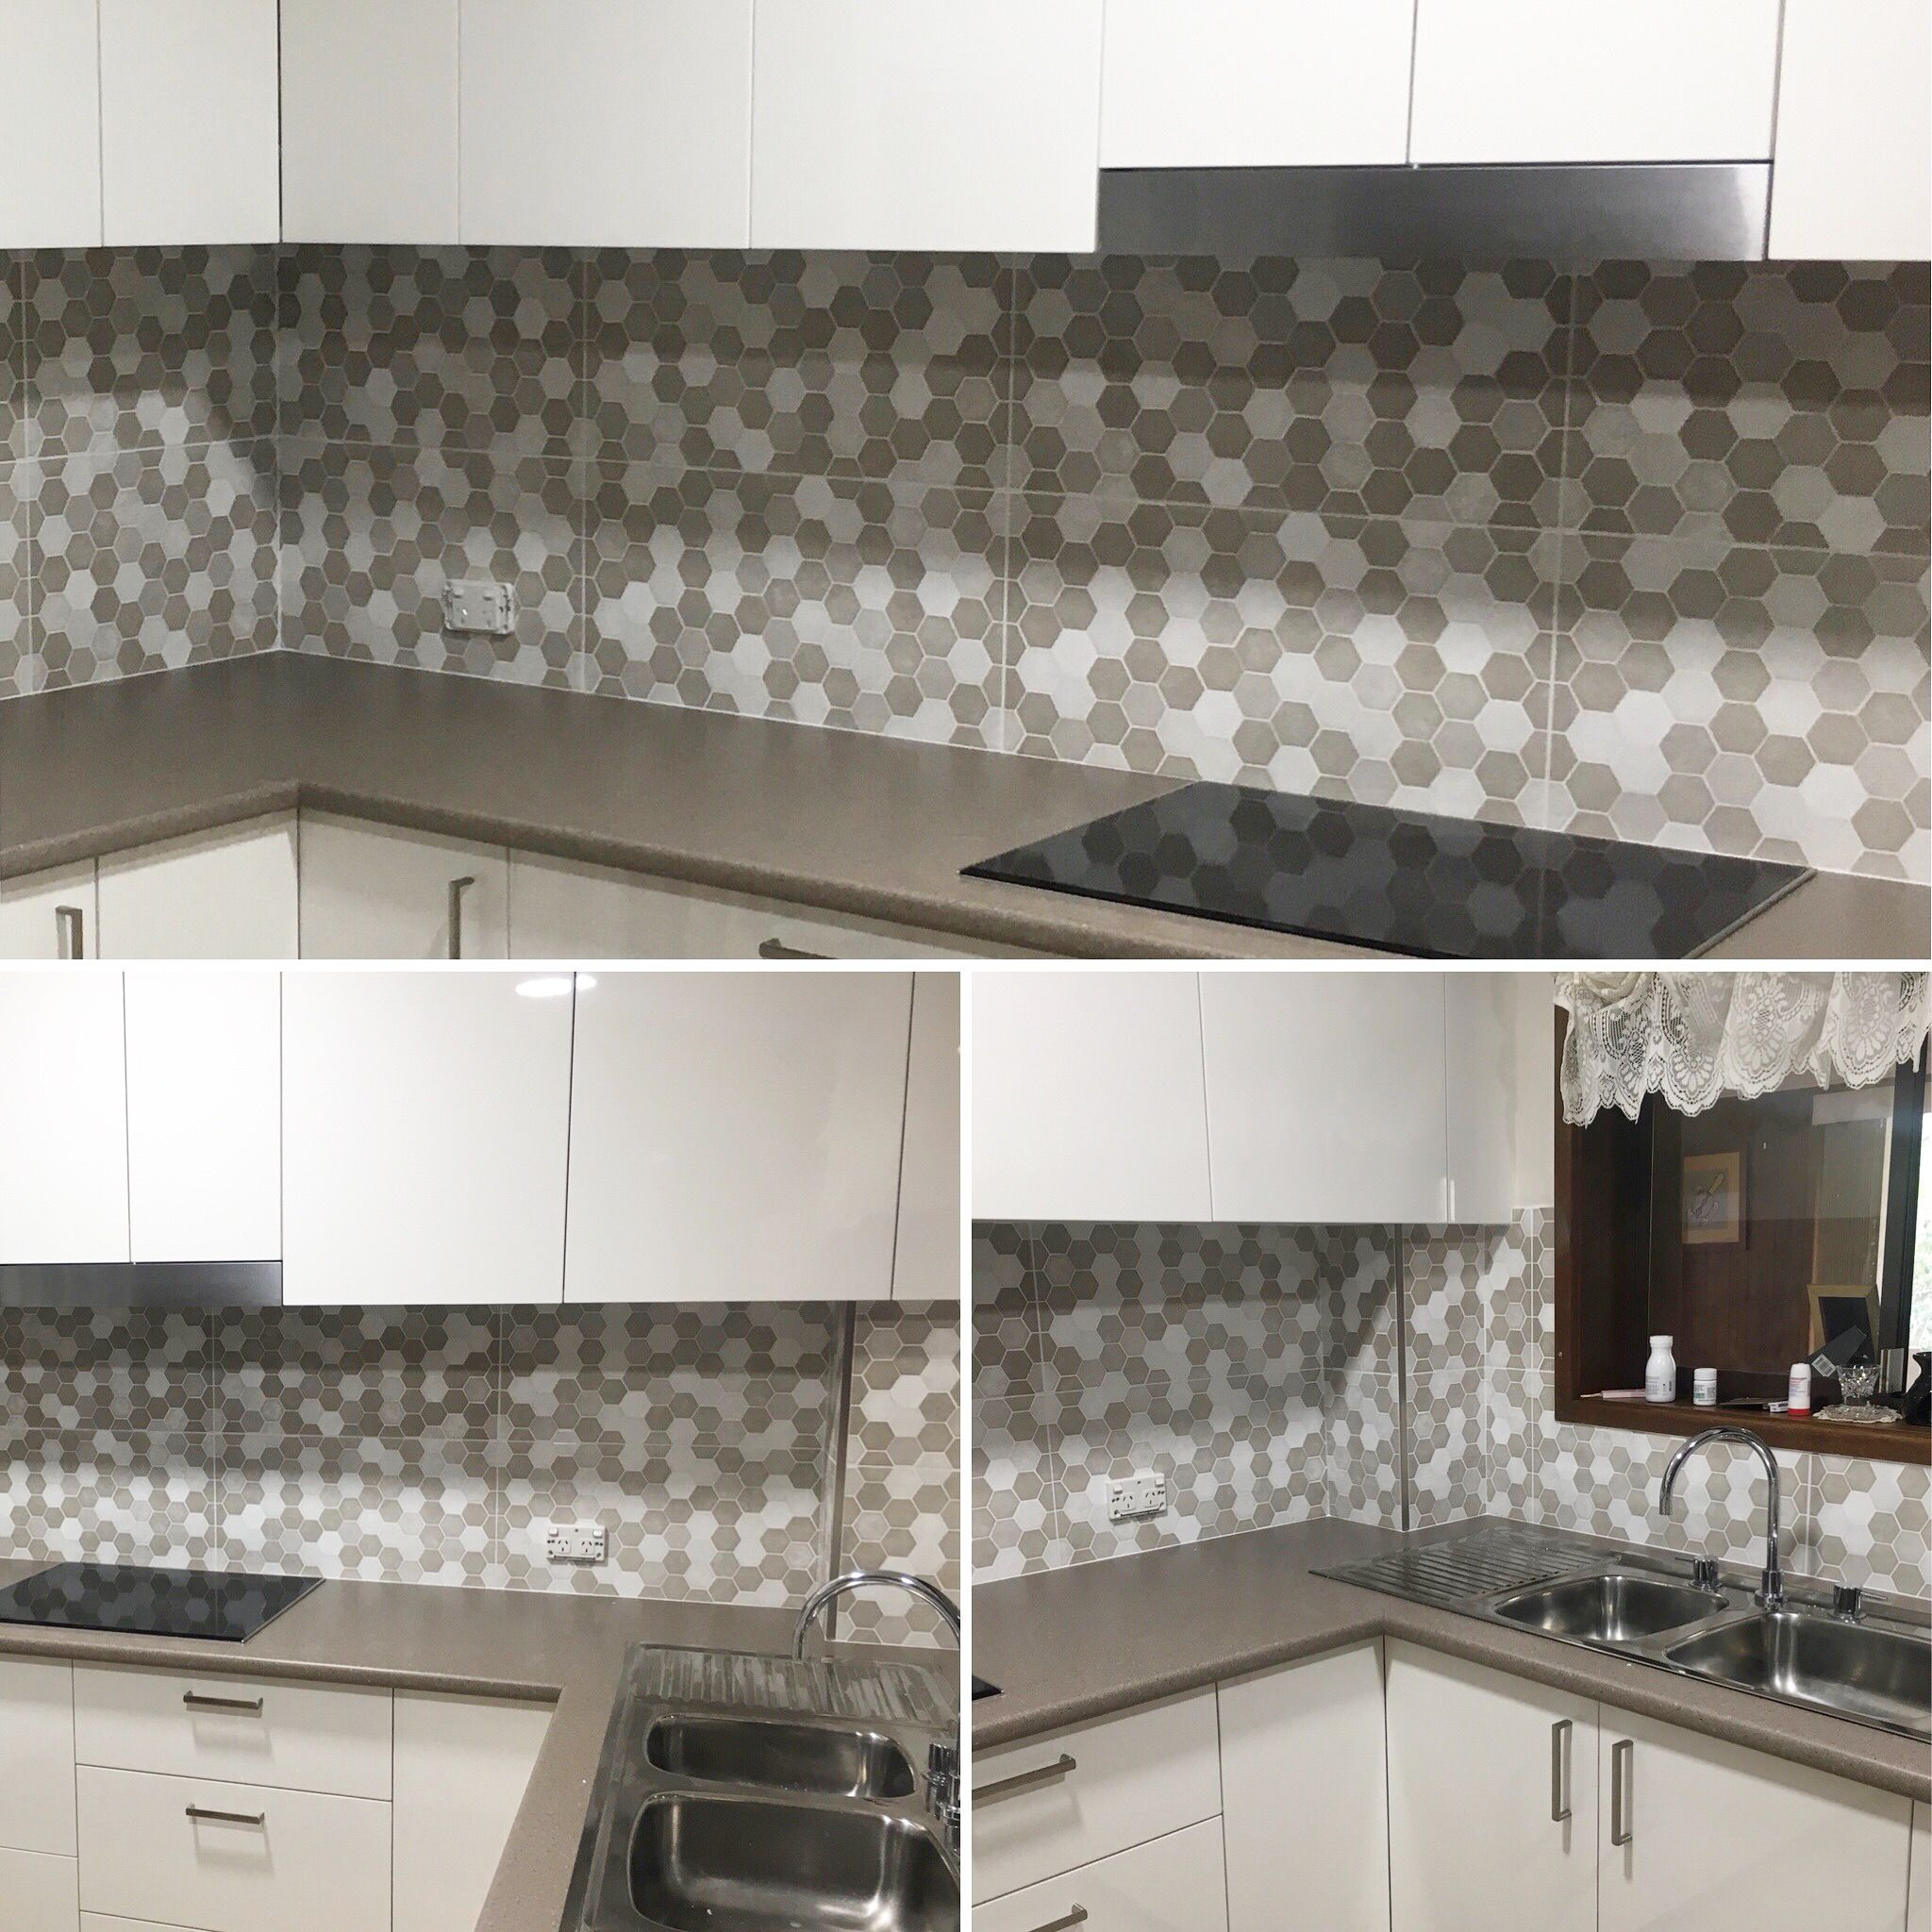 Beautiful Backsplash in hexagon love seeing customers ideas finished love happy customers tpghtiles